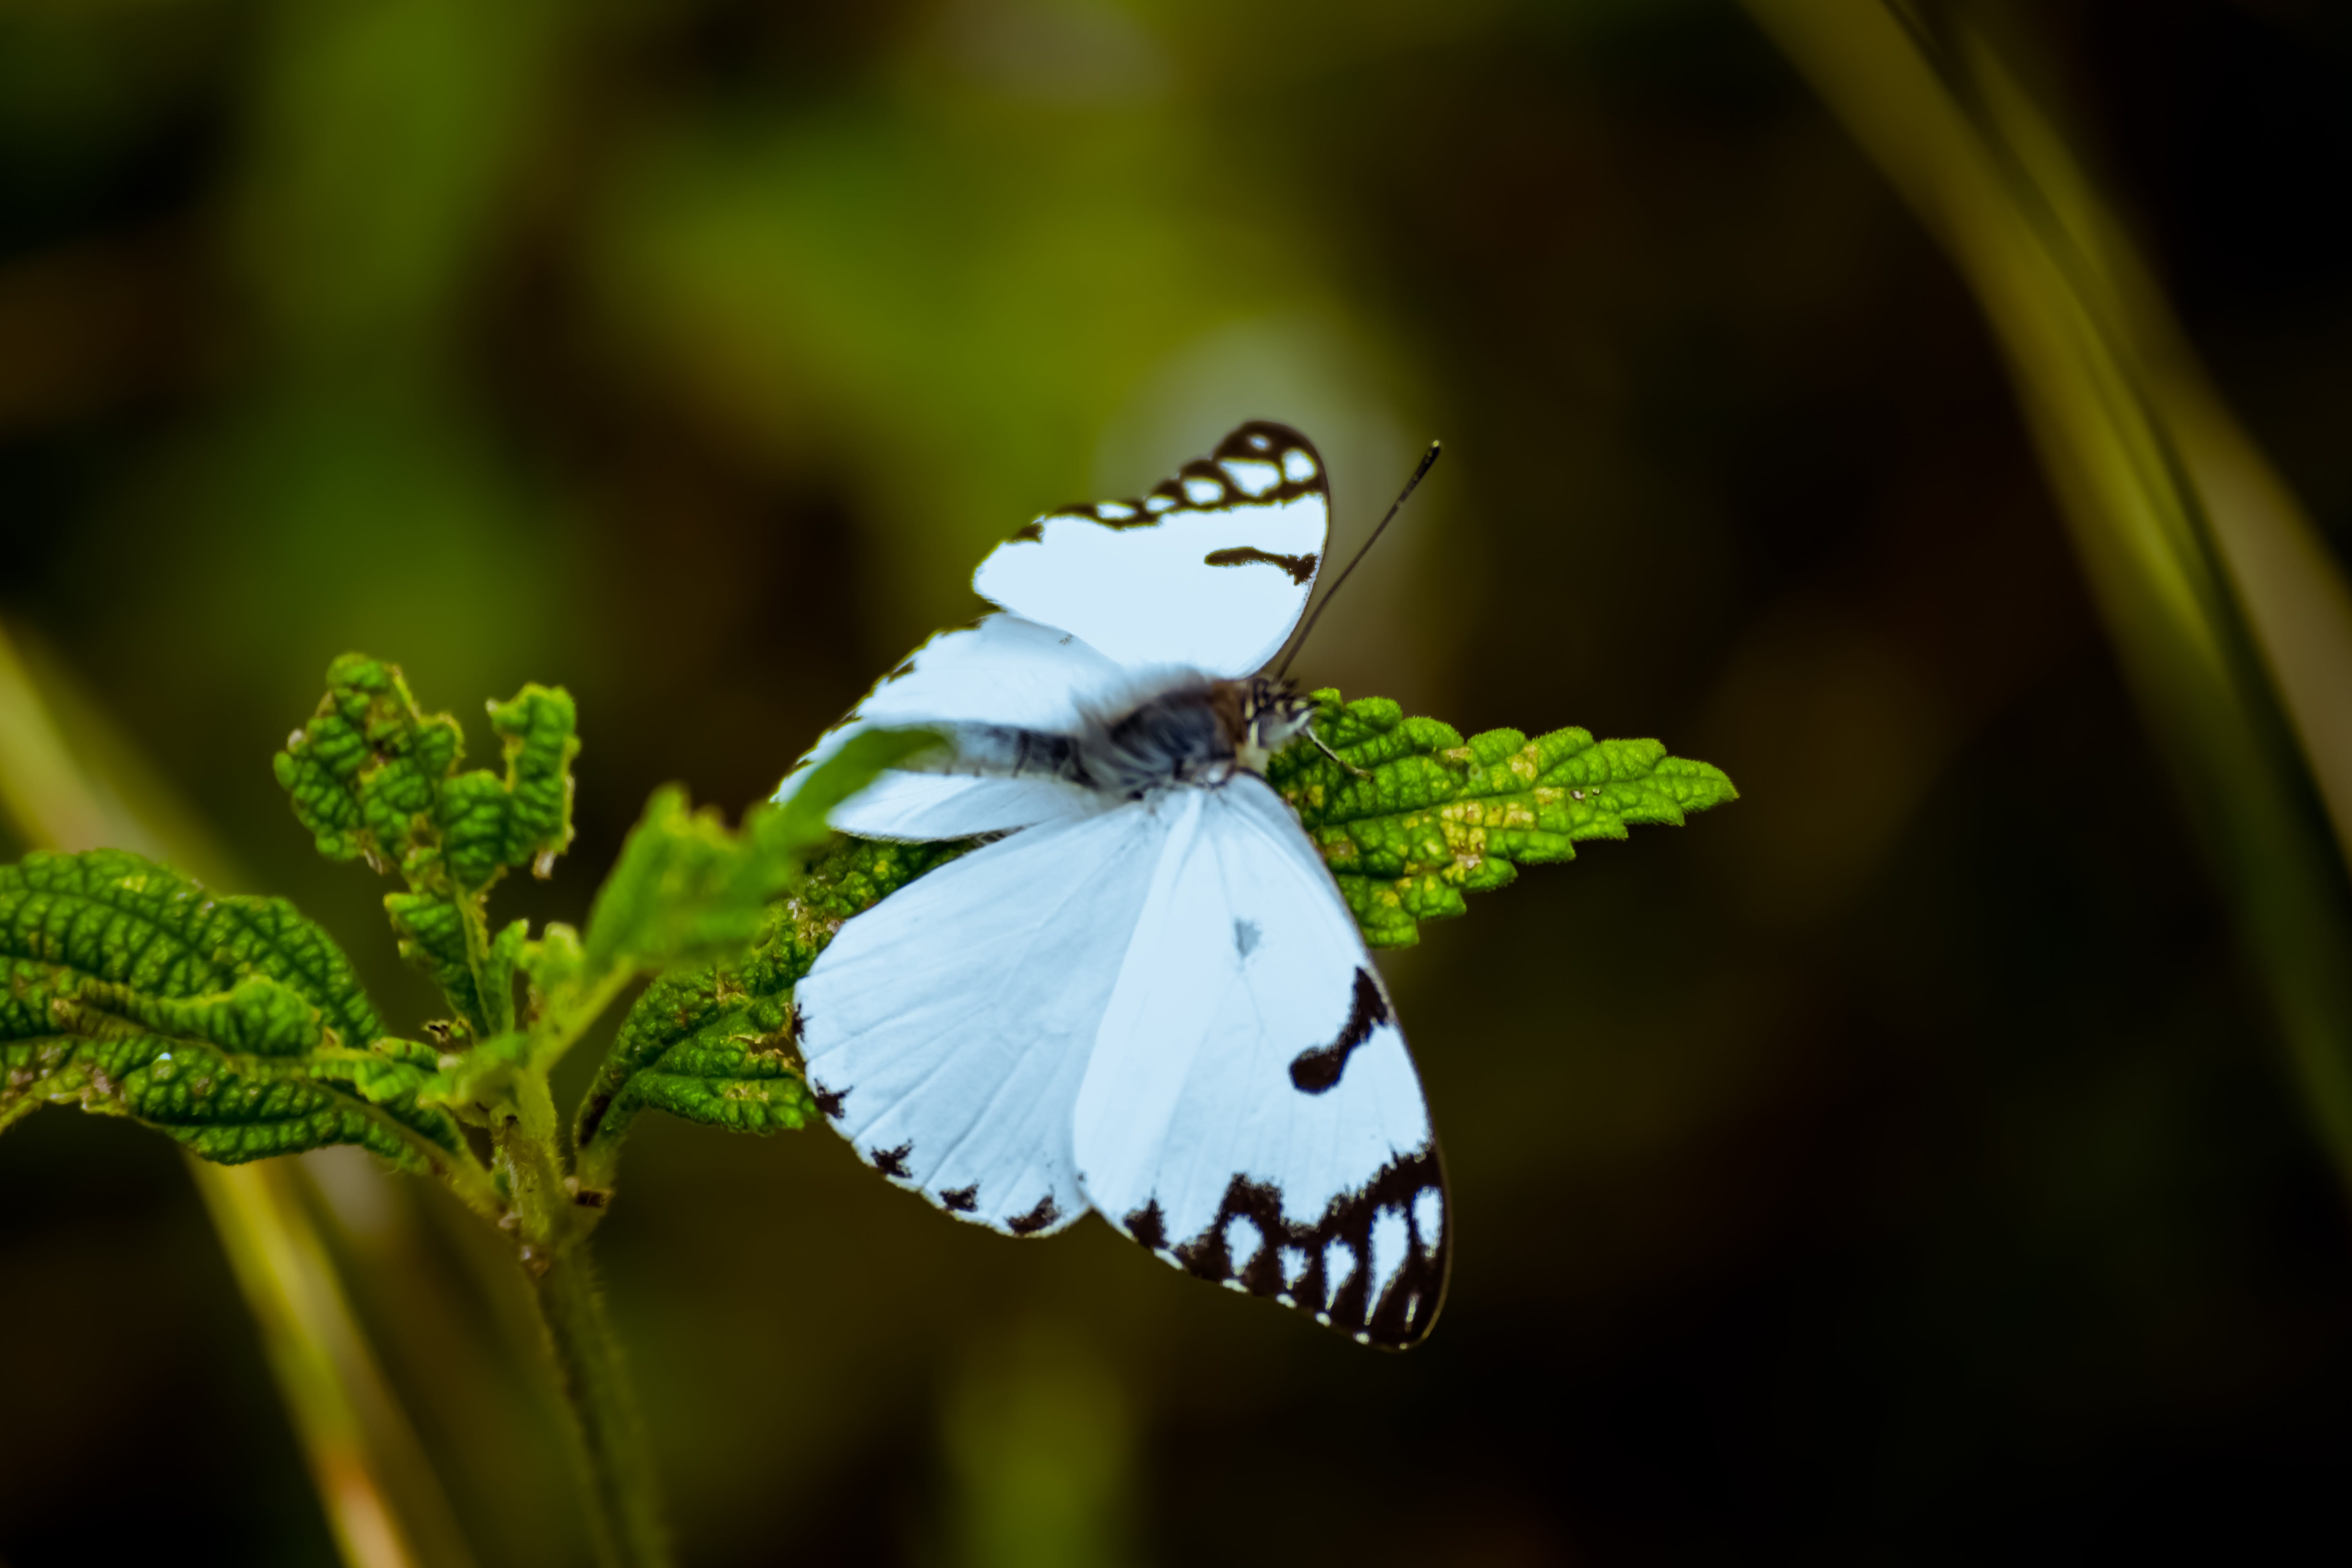 White And Black Butterfly Perching On Green Leafed Plant